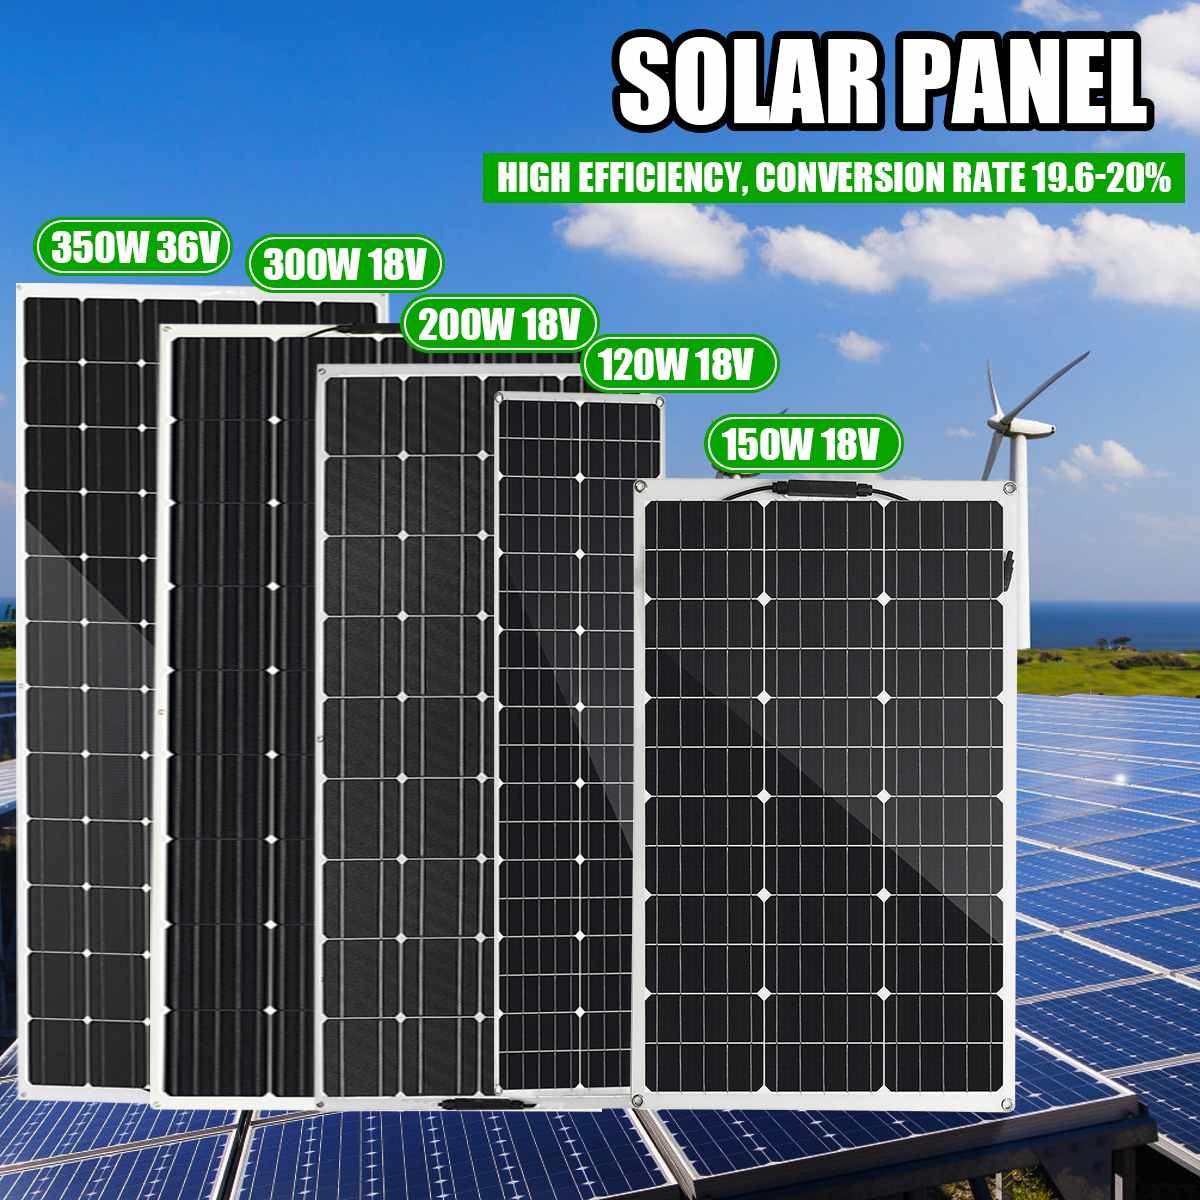 18V 36V Semi-flexible <font><b>Solar</b></font> <font><b>Panel</b></font> 120W/<font><b>150W</b></font>/200W/300W USB <font><b>Solar</b></font> Cell DIY Module Outdoor Connector Battery Charger for RV Boat image